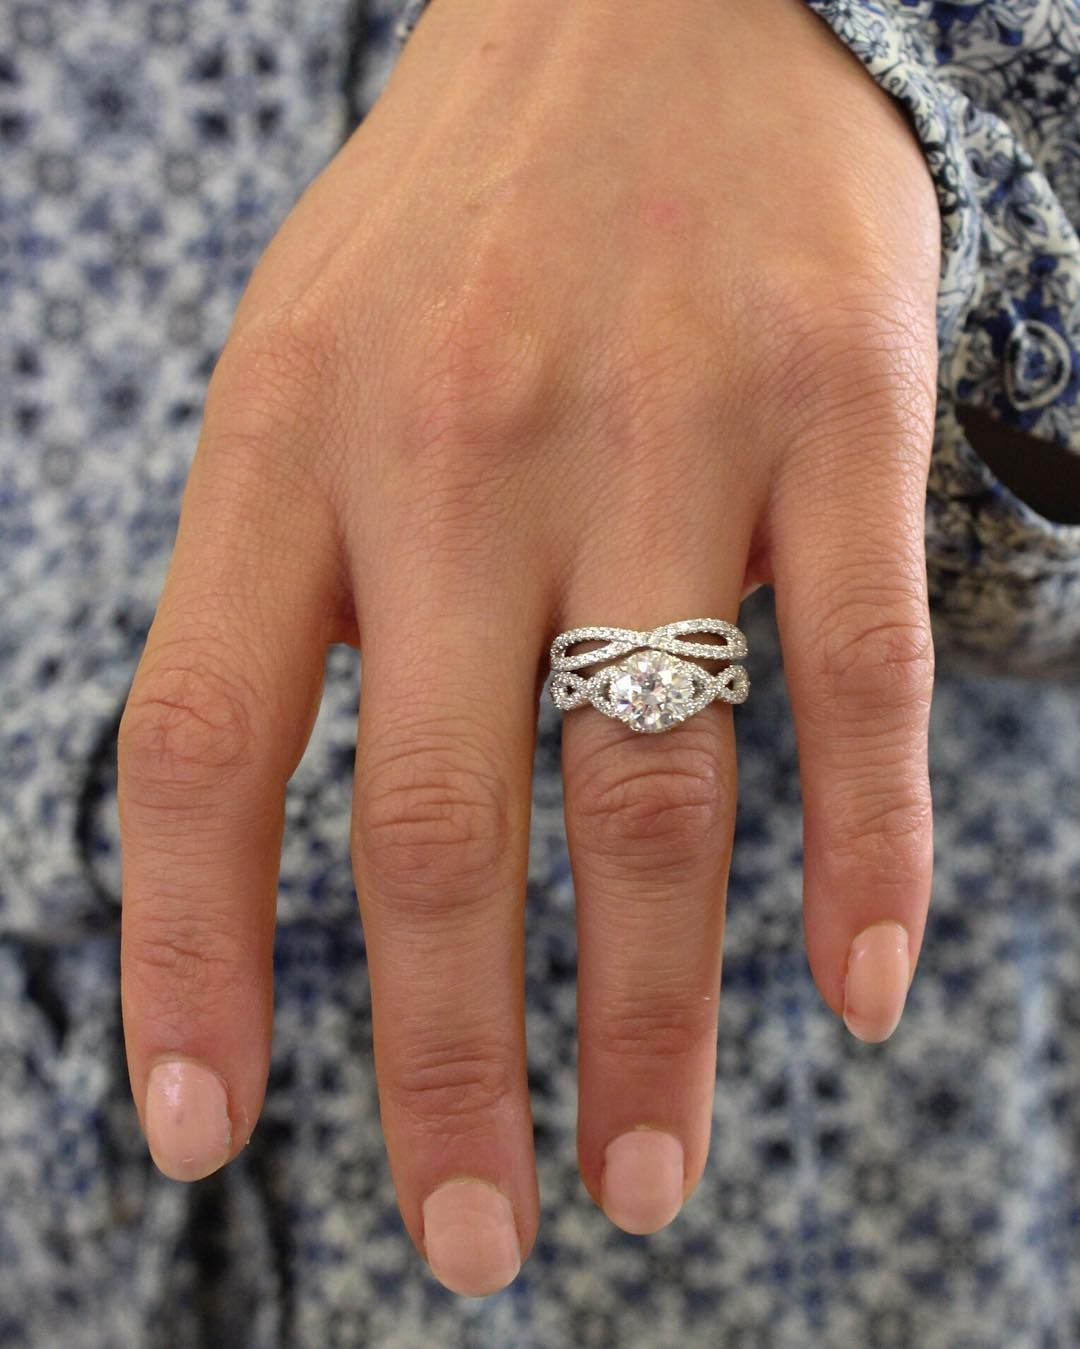 18k White Gold Entwined Halo Diamond Ring 1 3 Ct Tw Wedding Rings Engagement Engagement Wedding Ring Sets Engagement Rings